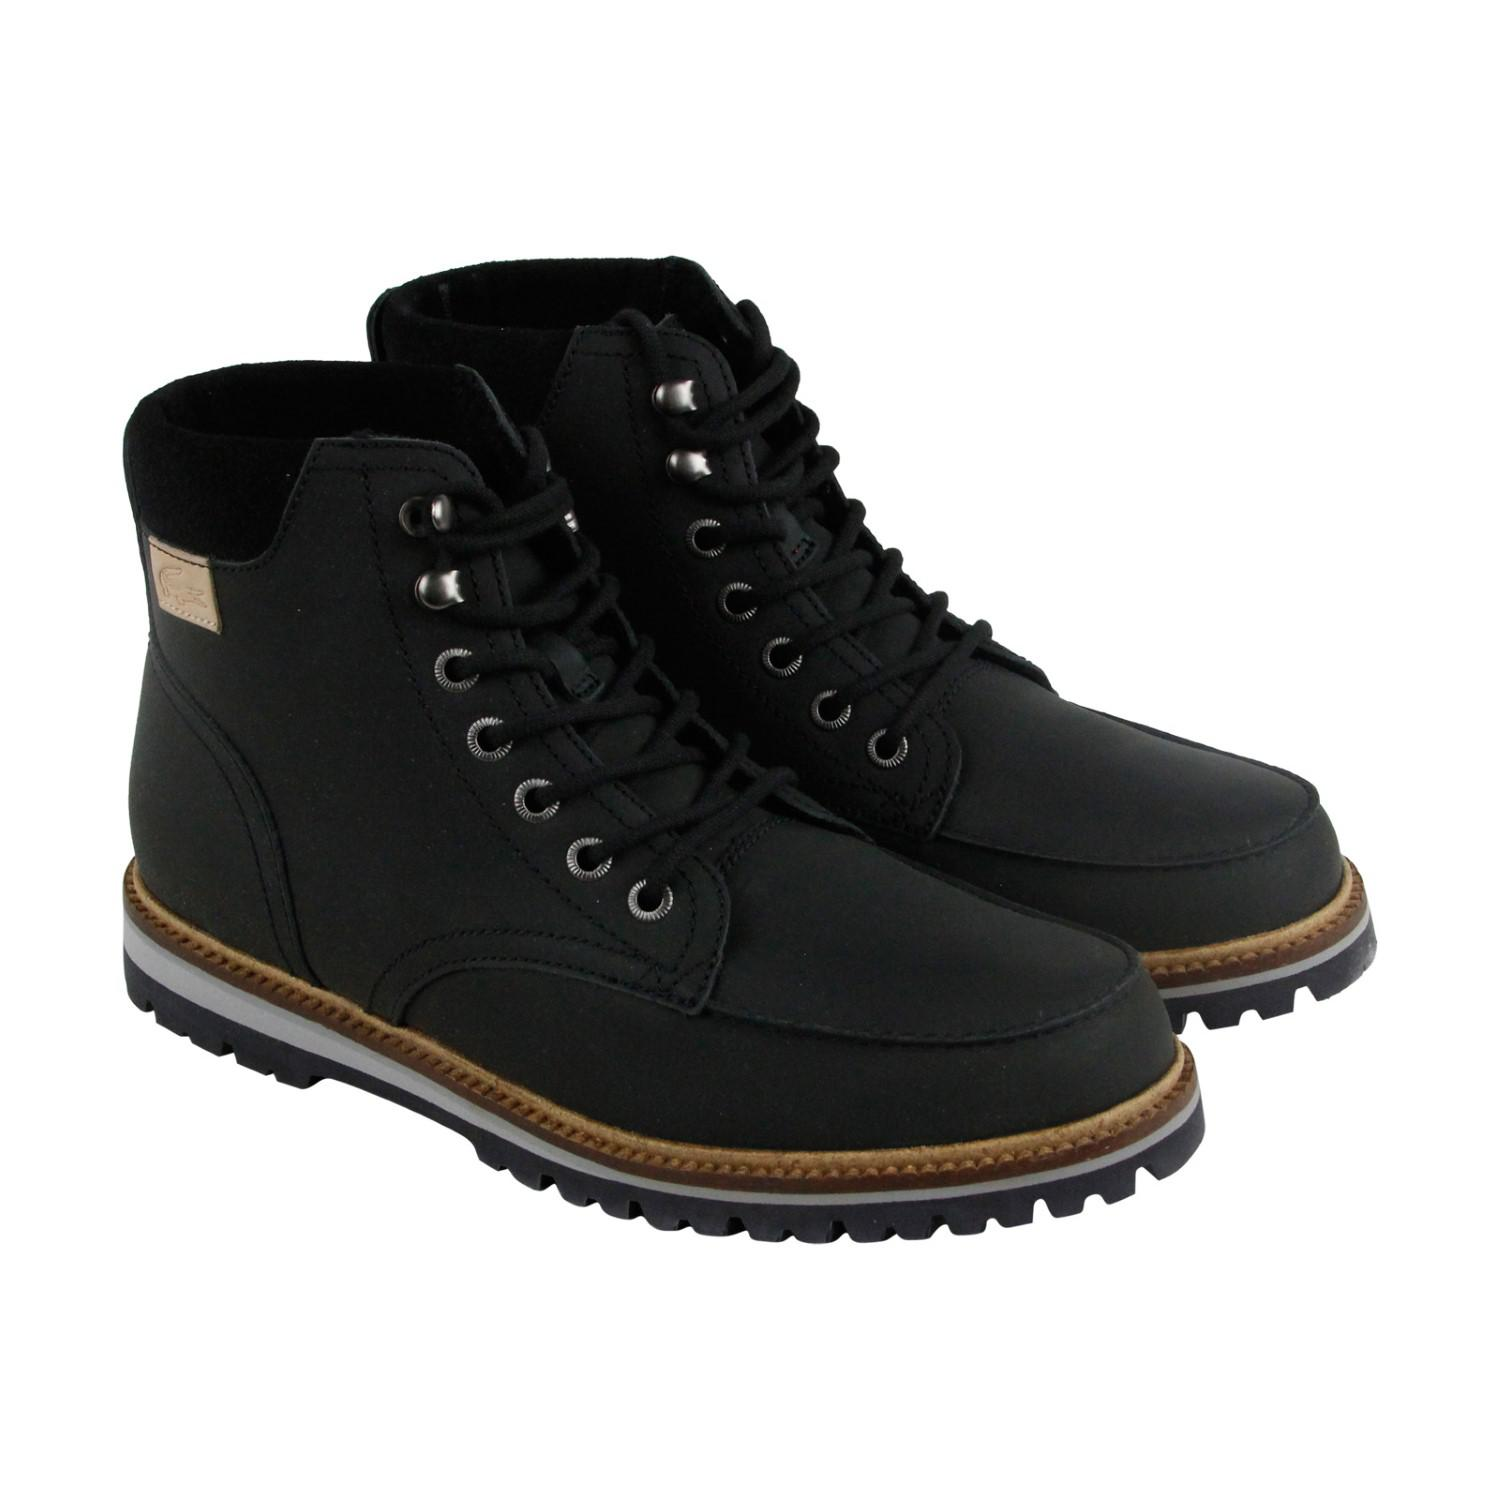 74e831b3a1649a Lyst - Lacoste Montbard Boot Srm Casual Dress Boots in Black for Men